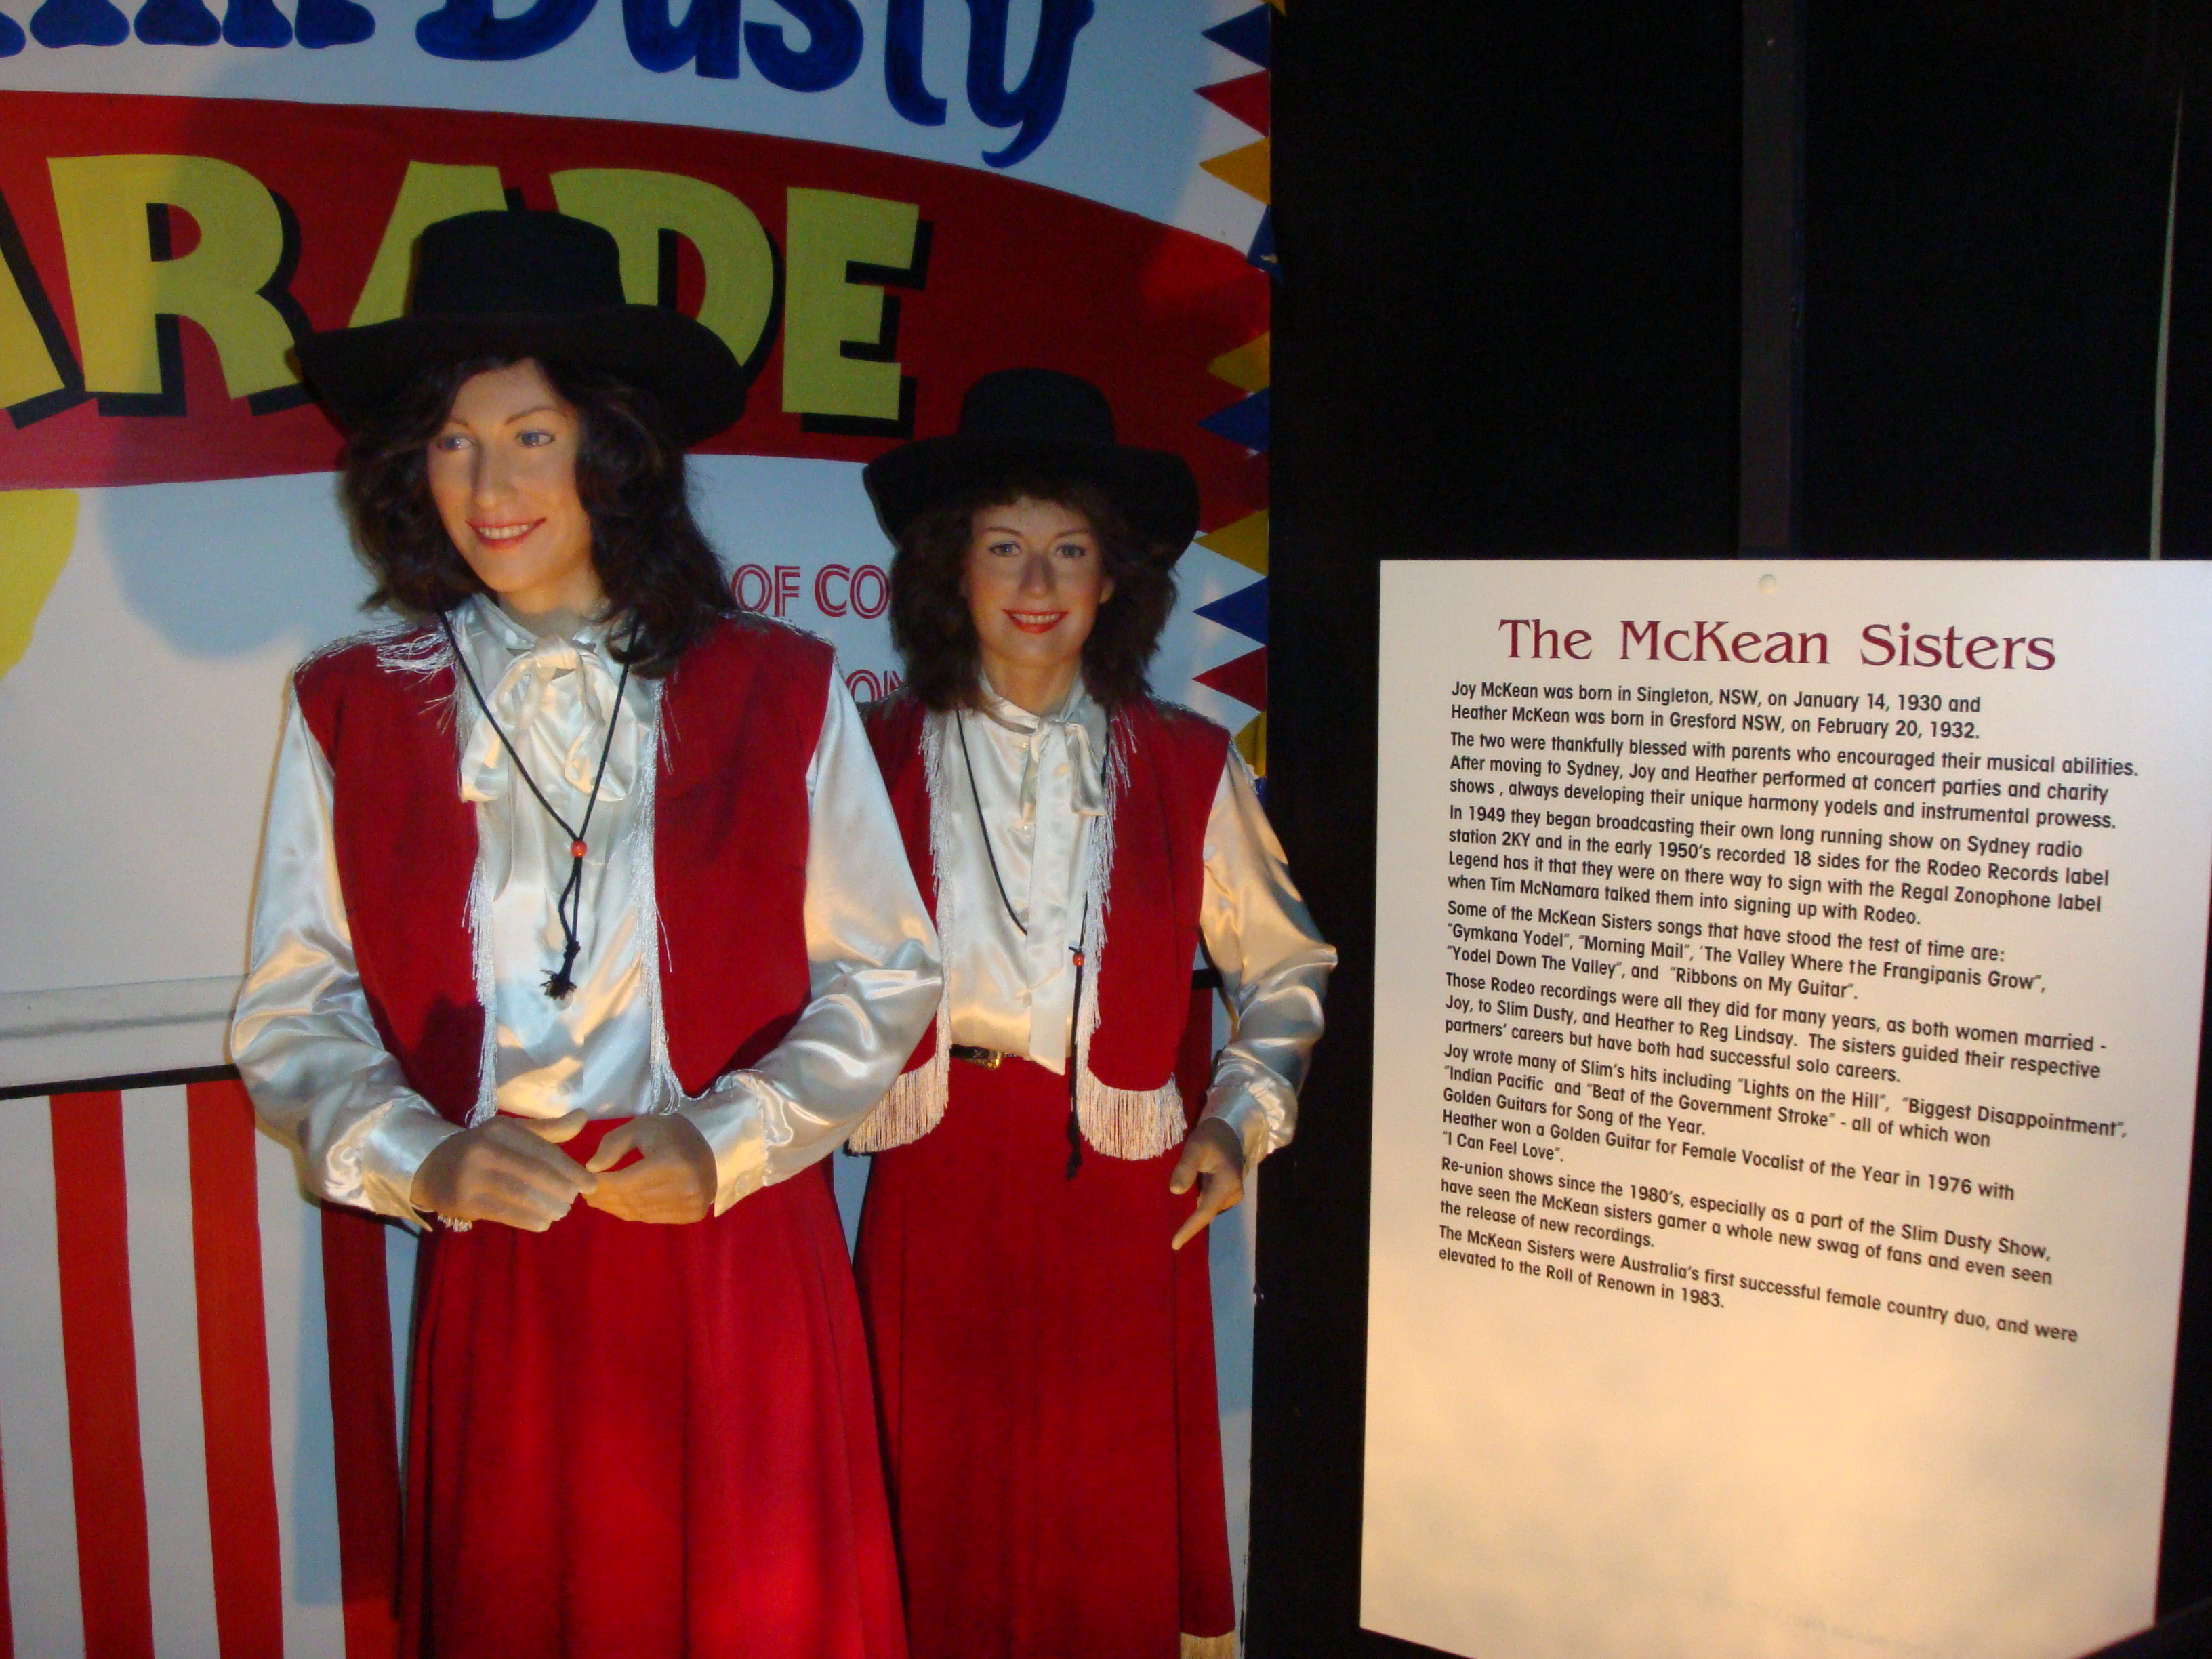 The McKee Sisters display at the Country Music Wax Museum